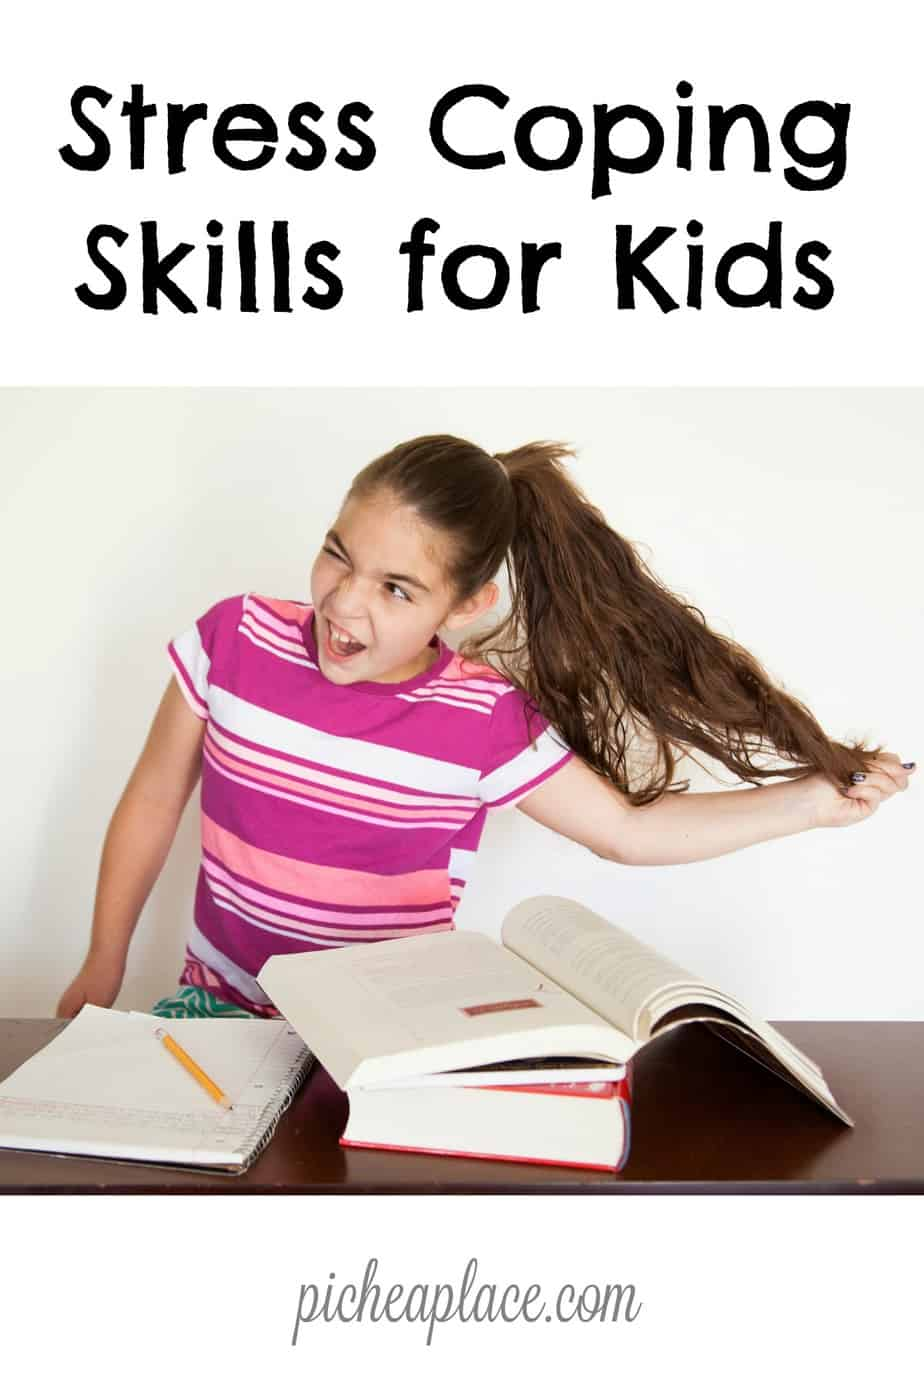 Stress Coping Skills For Kids